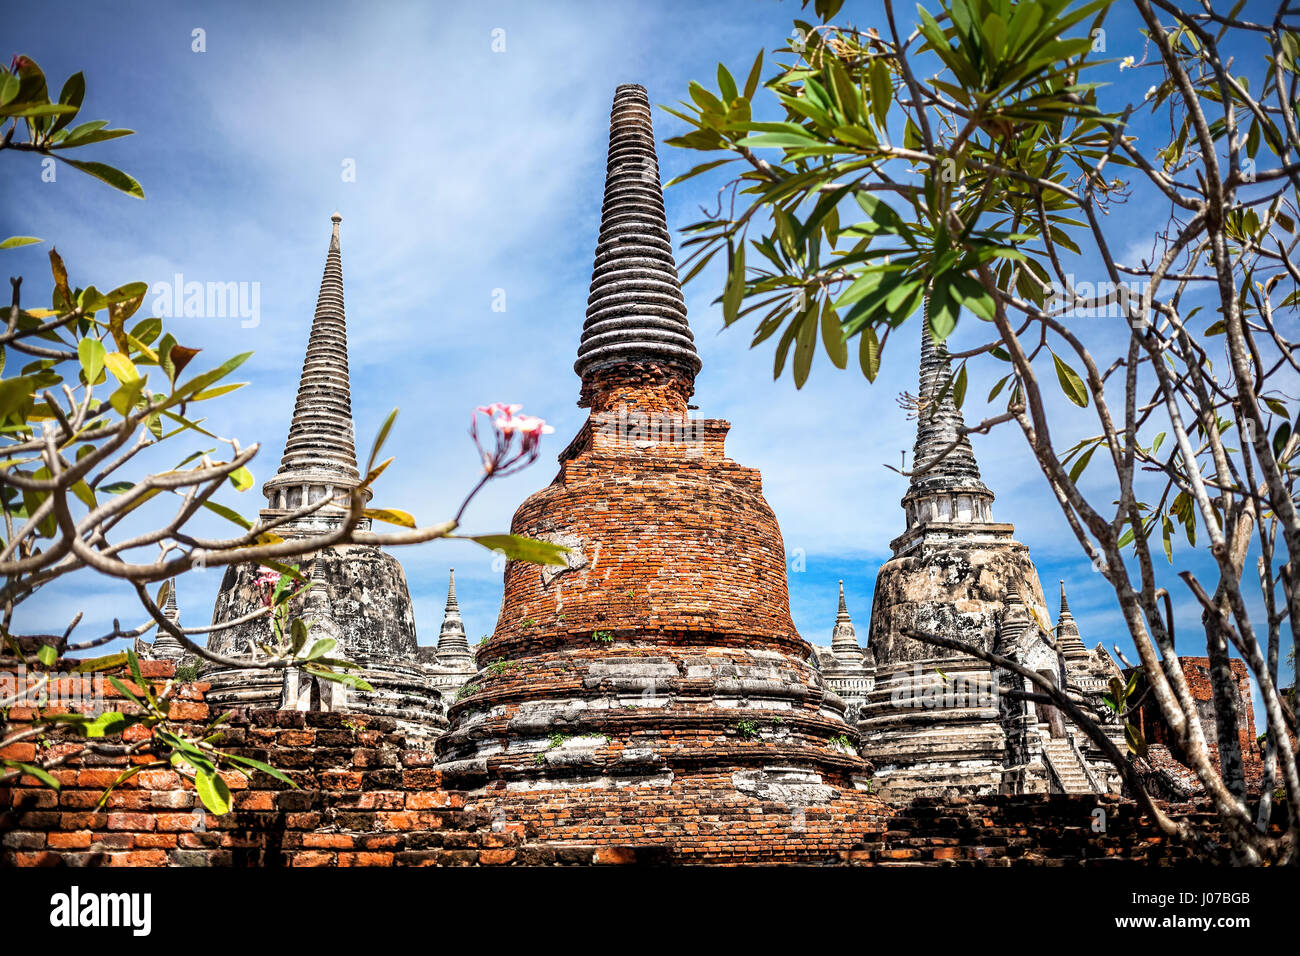 Big ruined Stupa at Wat Si Sanphet in Ayuttaya historical capital of Thailand - Stock Image